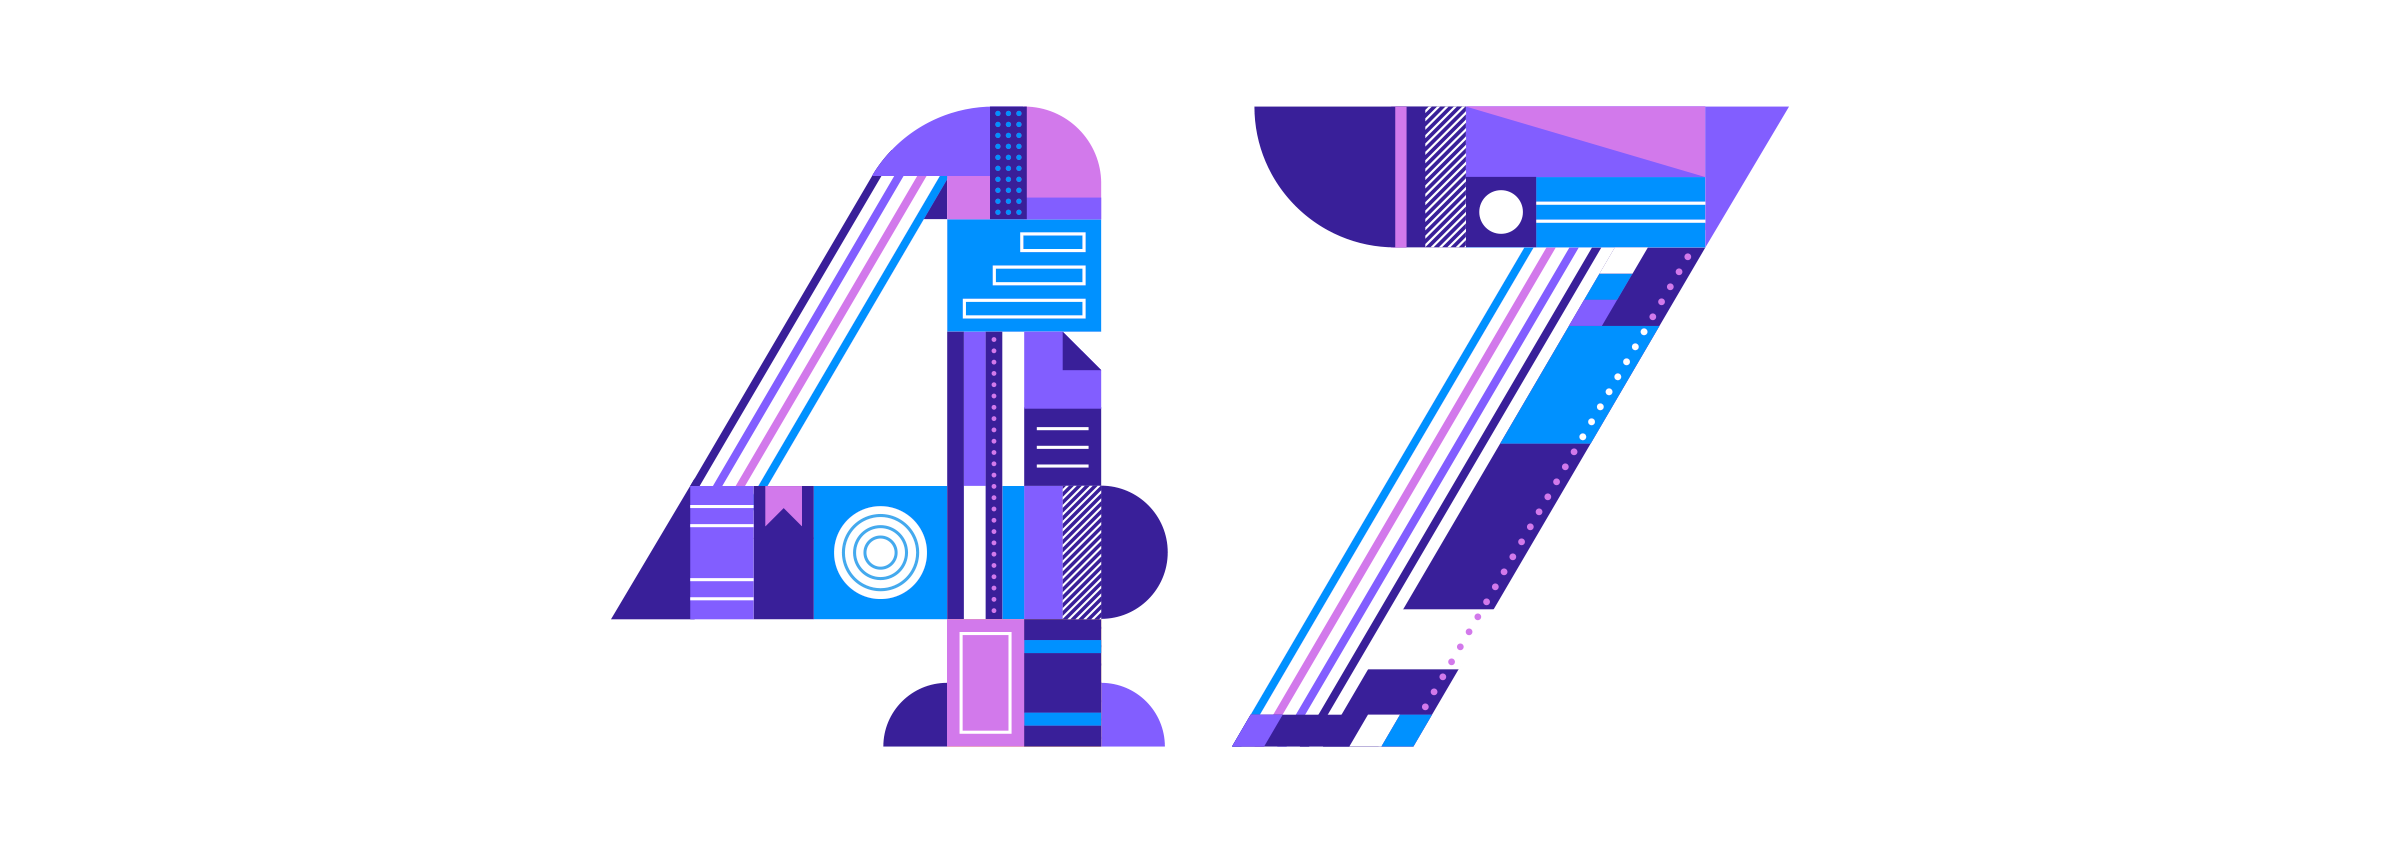 Introducing Libraries and Smooth Corners in Sketch 47